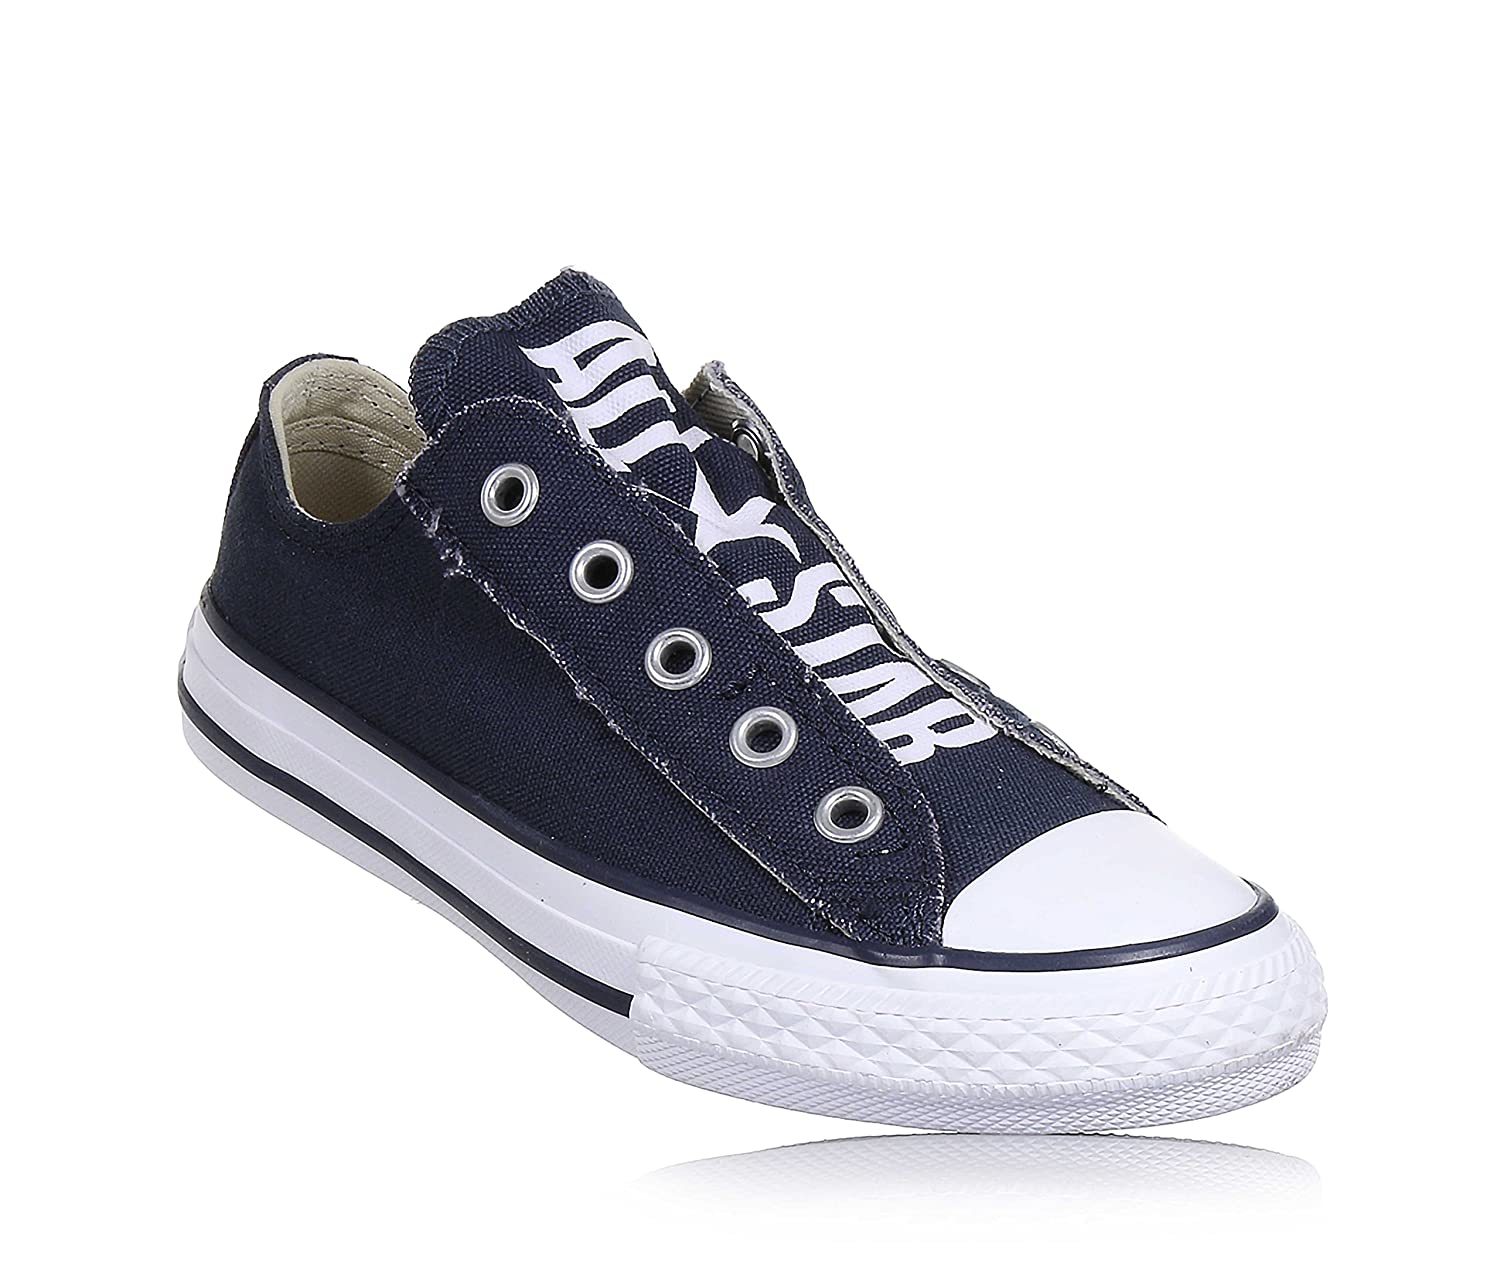 468617510a73 CONVERSE 356854C Sneakers Child  Amazon.co.uk  Shoes   Bags